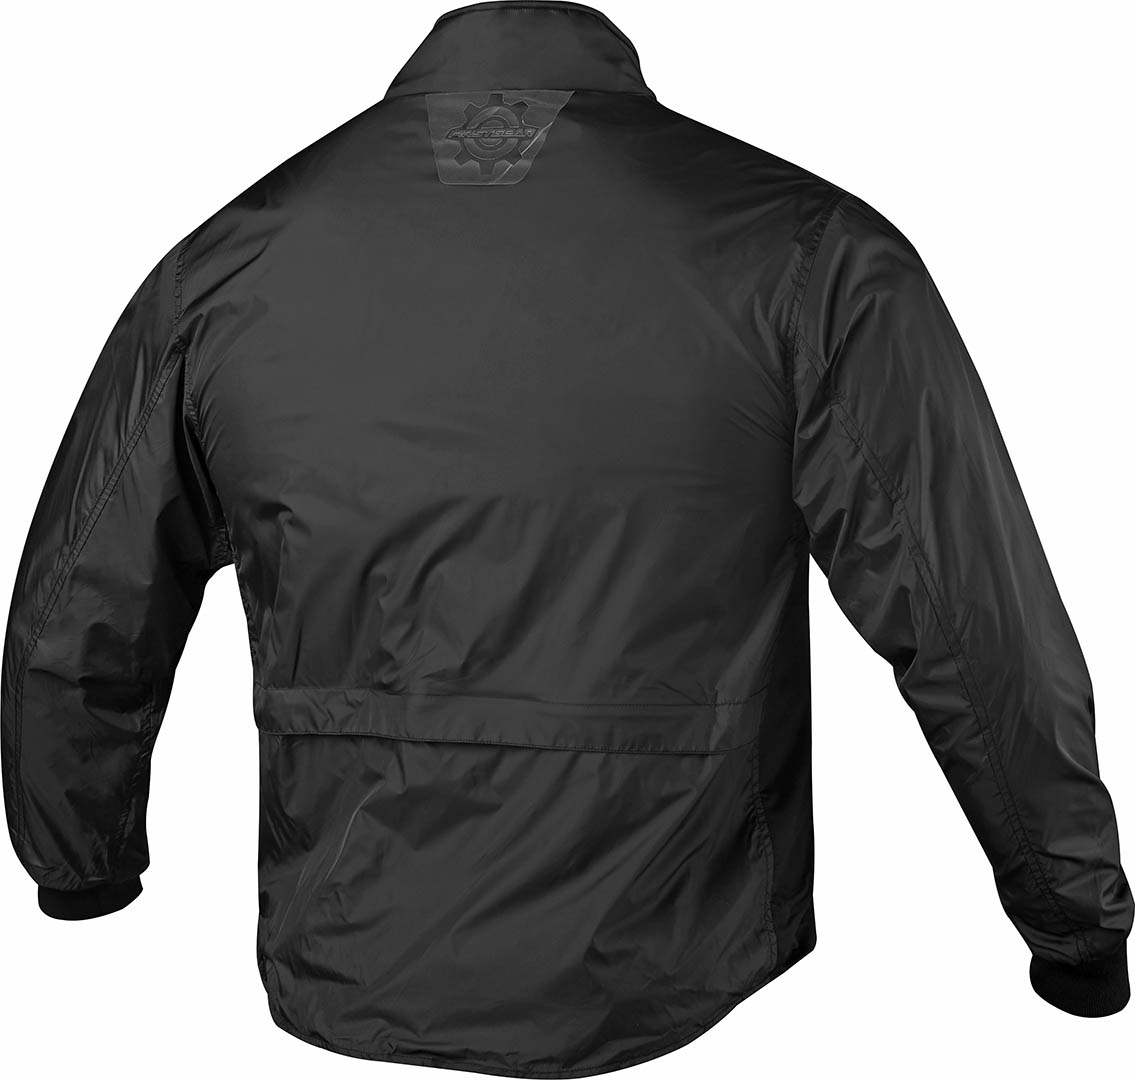 FirstGear Heated Motorcycle Apparel Review: Jacket, Pant ...